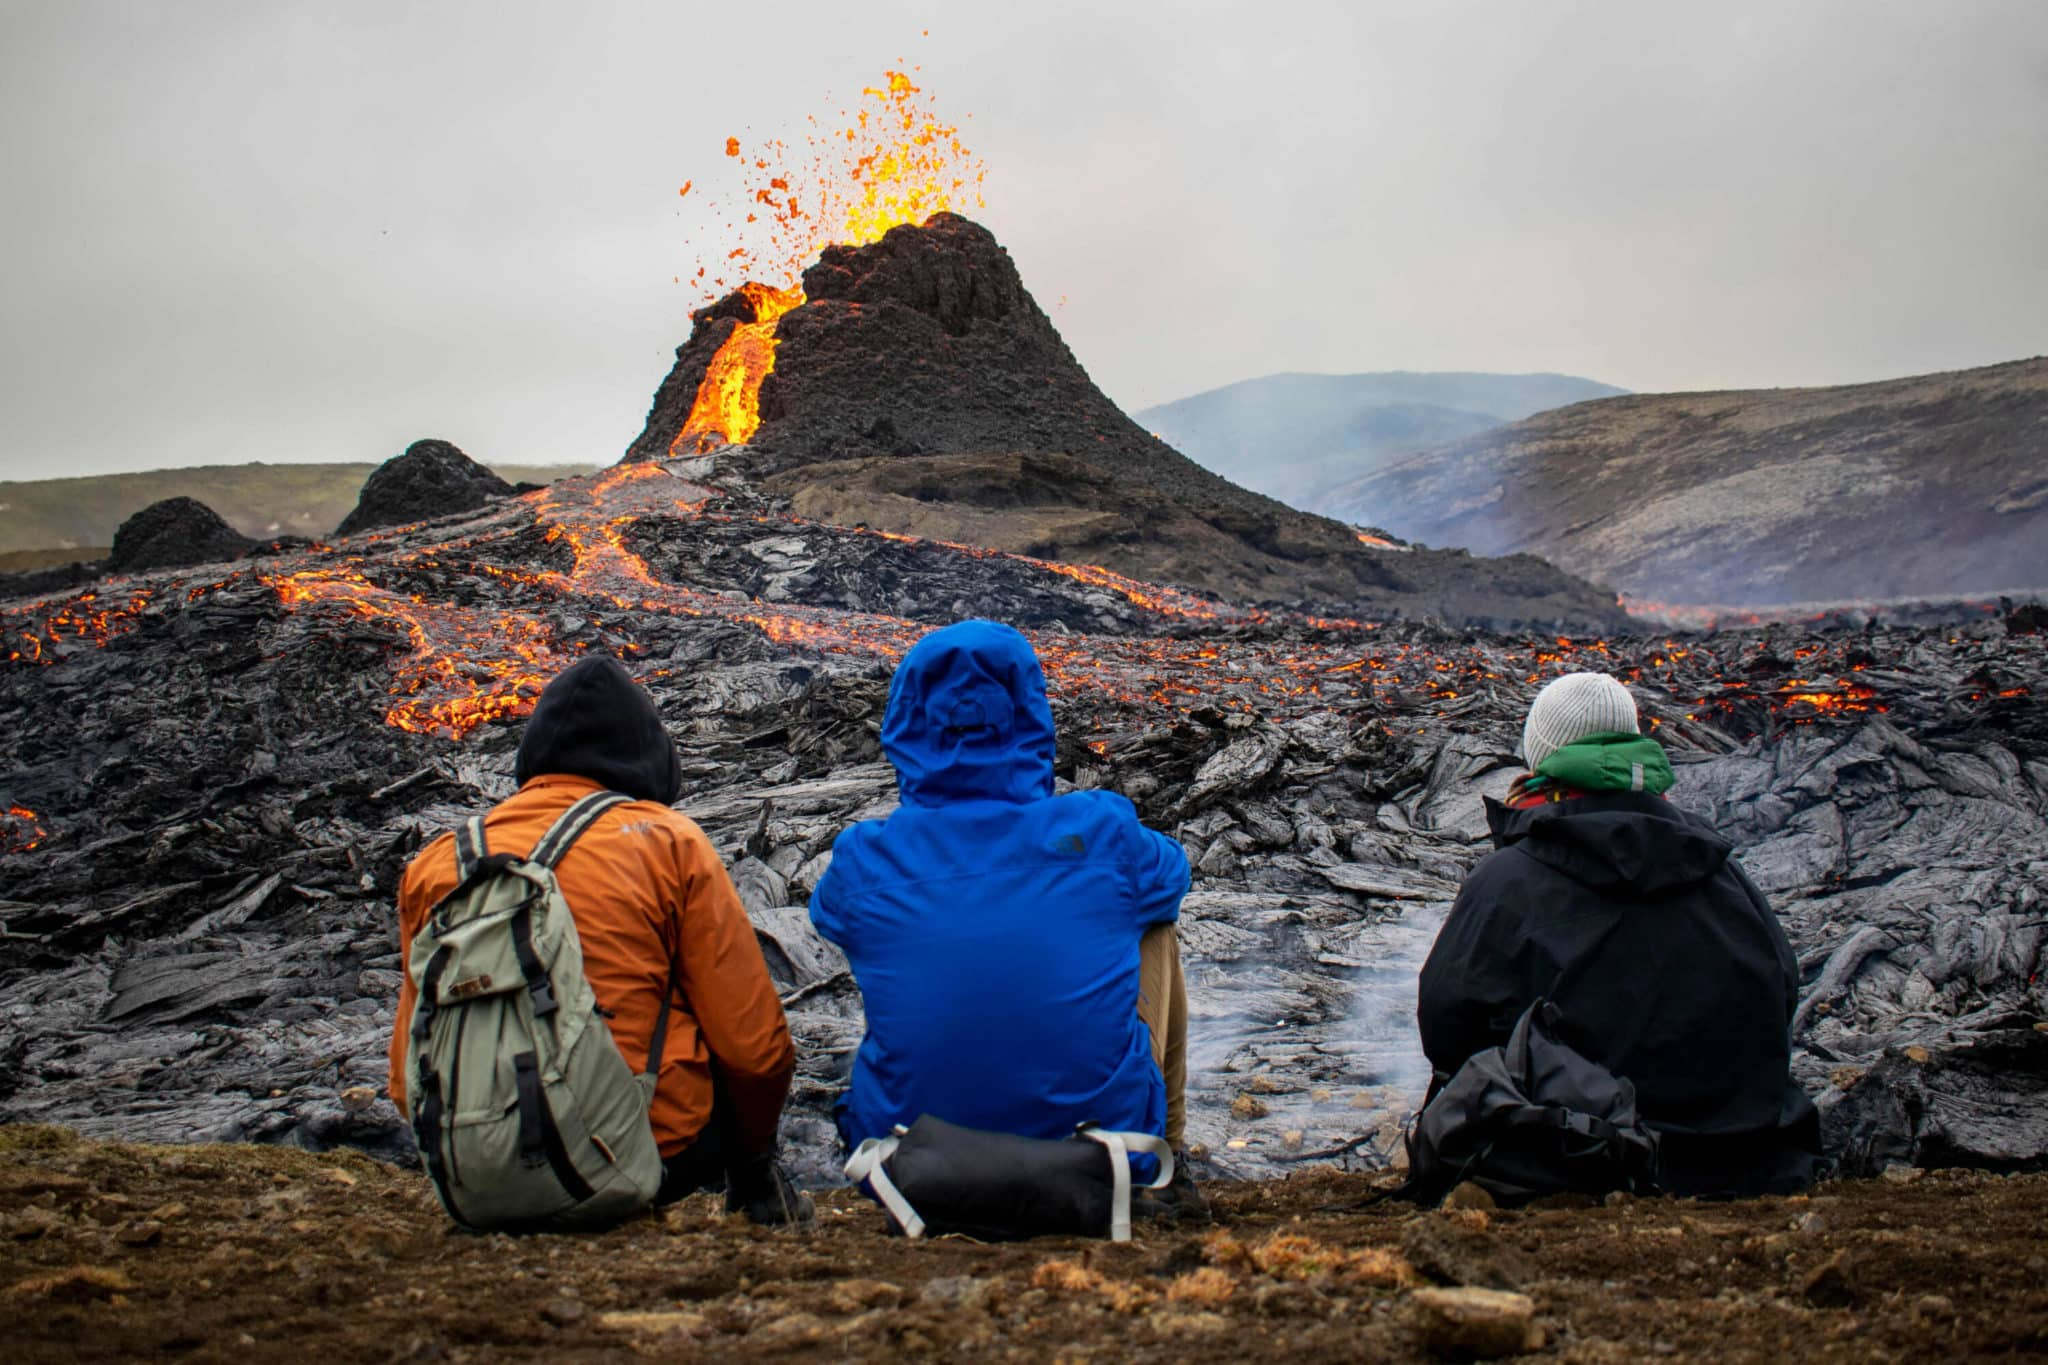 Thousands flock to spectacular volcanic eruption in Iceland